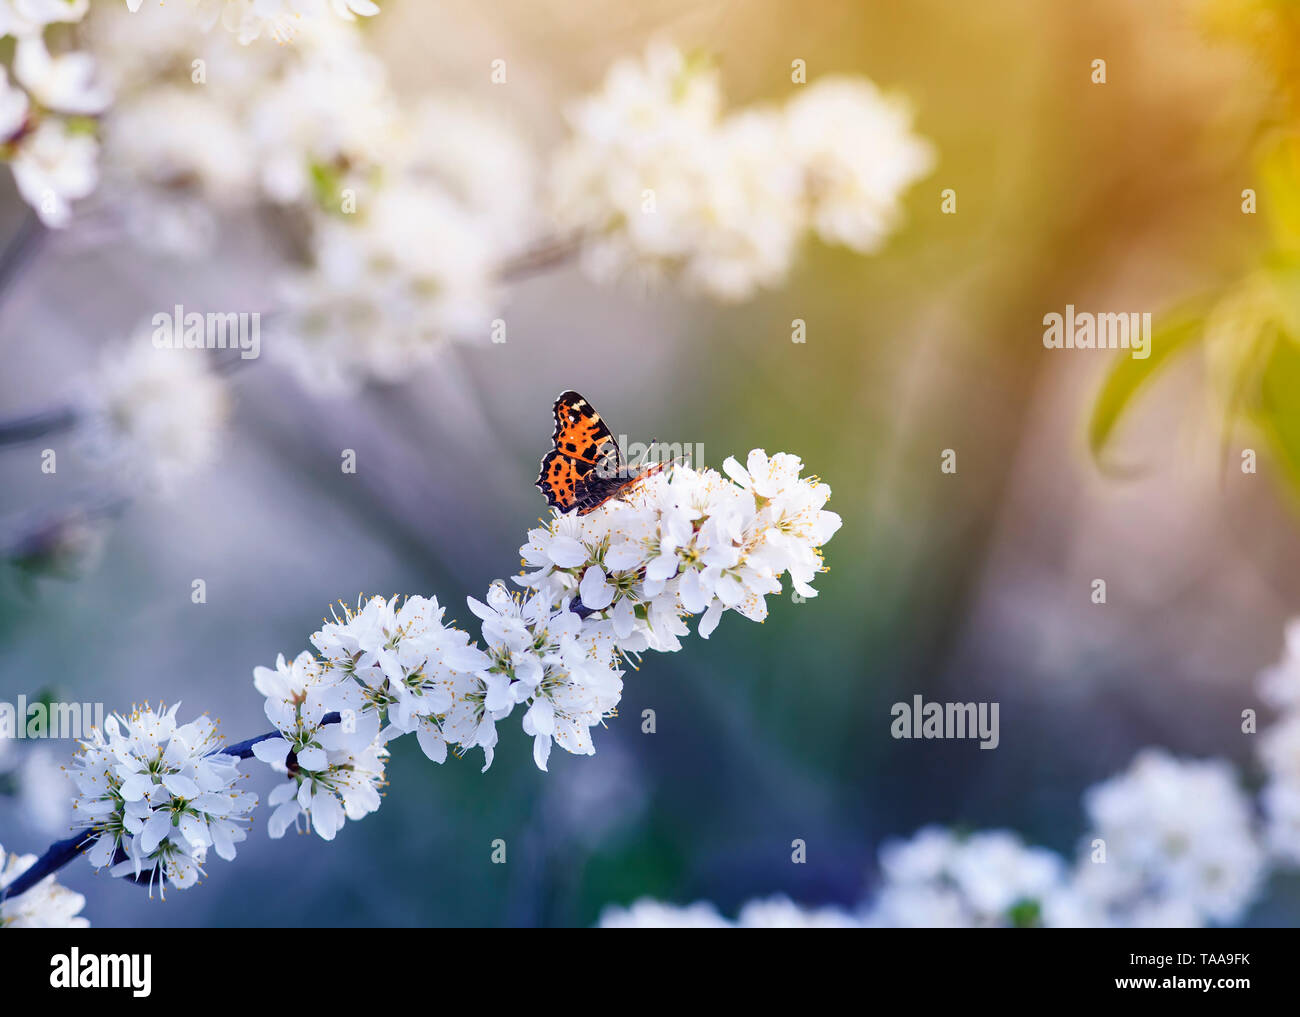 motley orange a small butterfly sits on branches with fluffy fragrant flowers and buds of a bush blossoming in May Plomo sunny garden in shades of lil - Stock Image